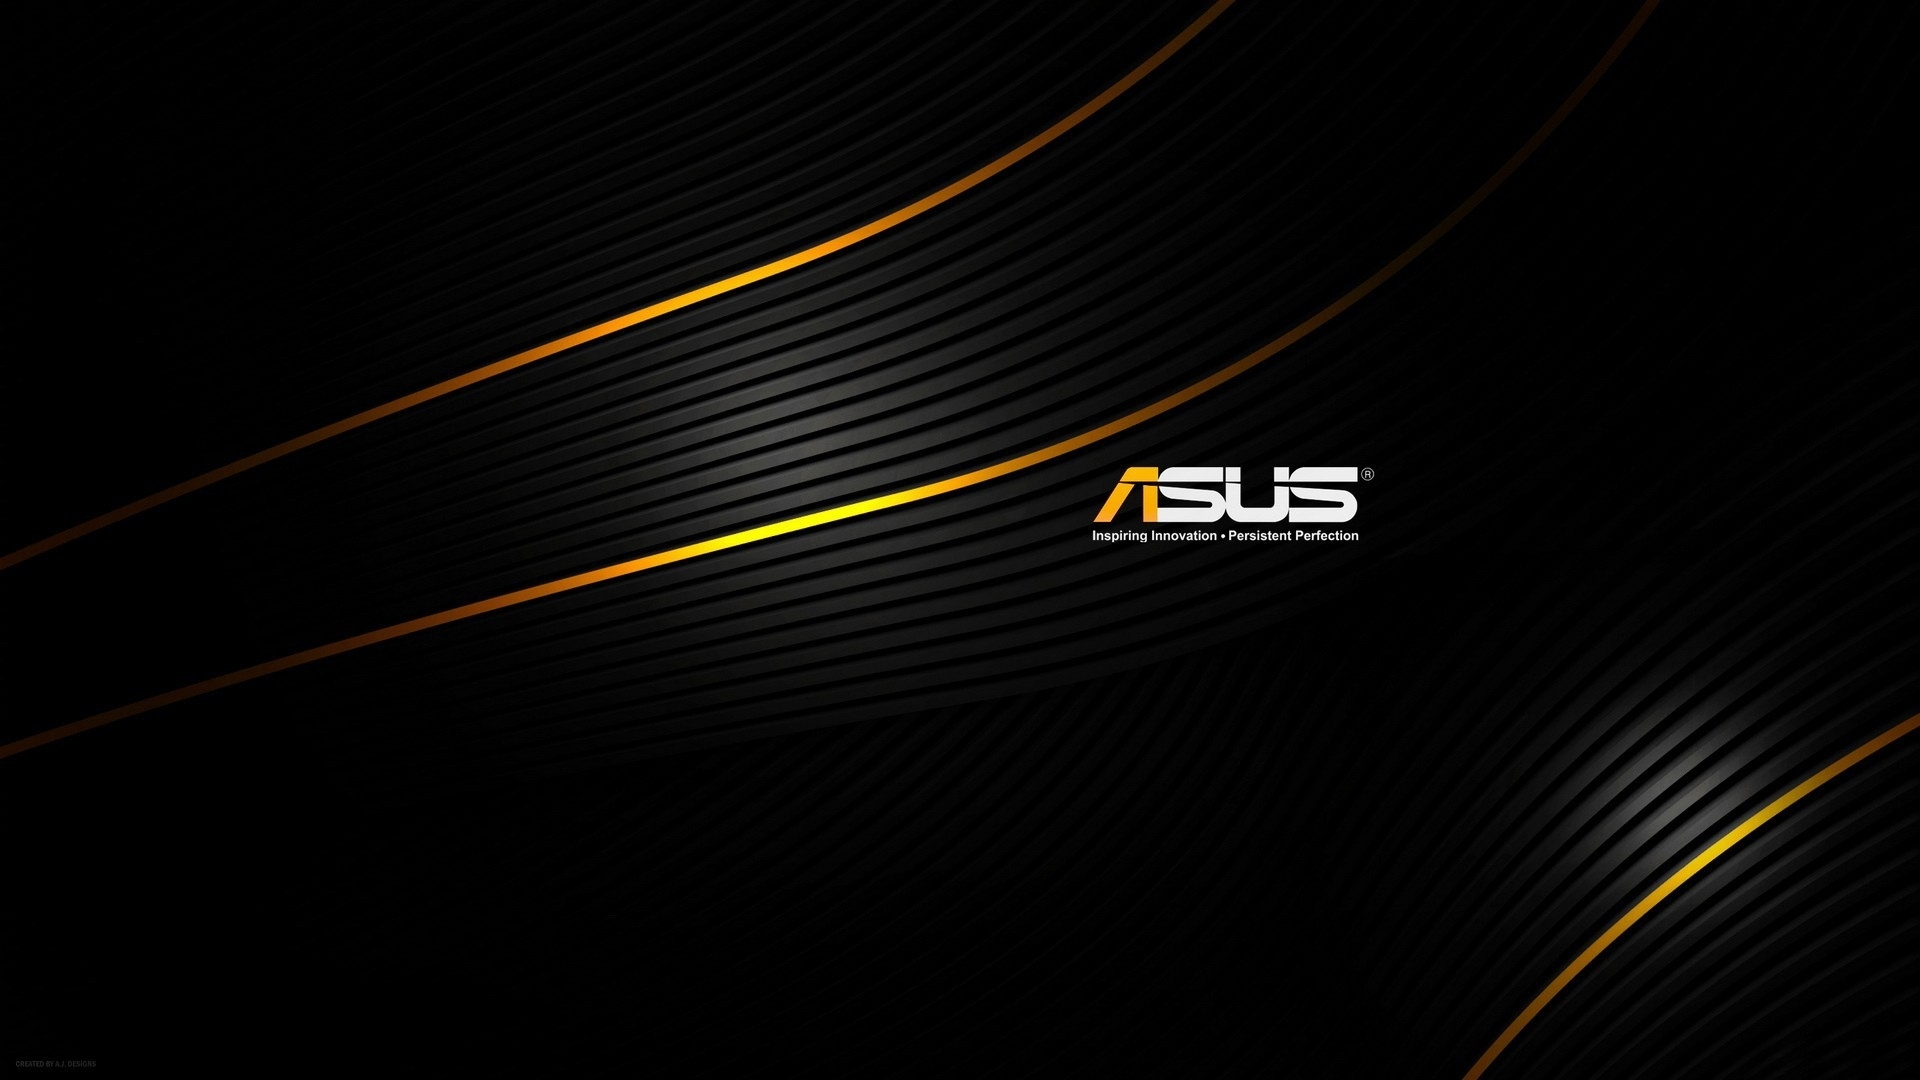 asus wallpaper hd | high definition wallpapers (hd wallpapers 1080p